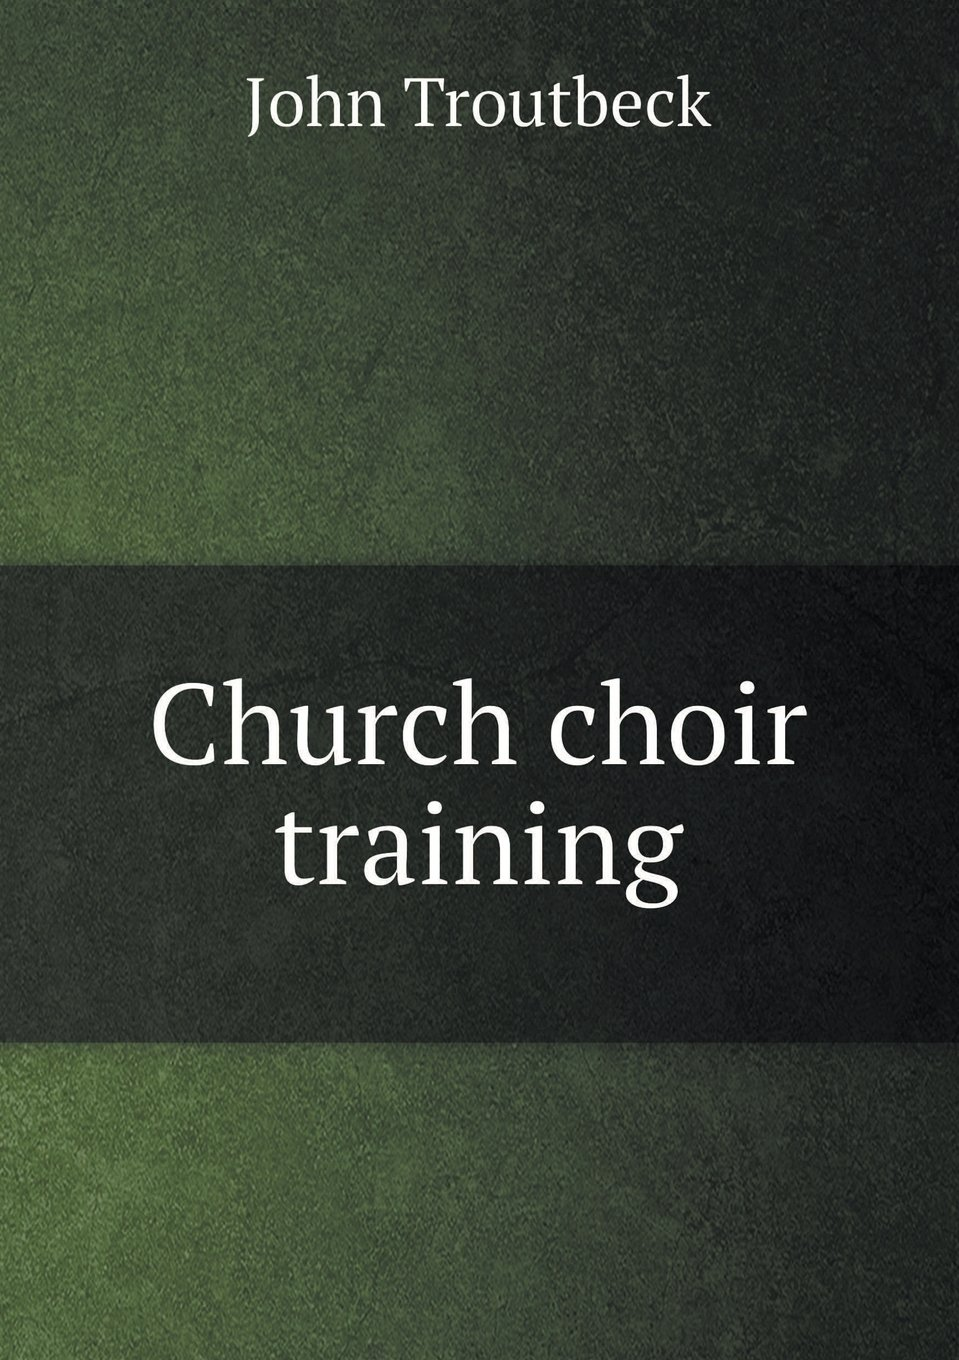 Church choir training ePub fb2 ebook